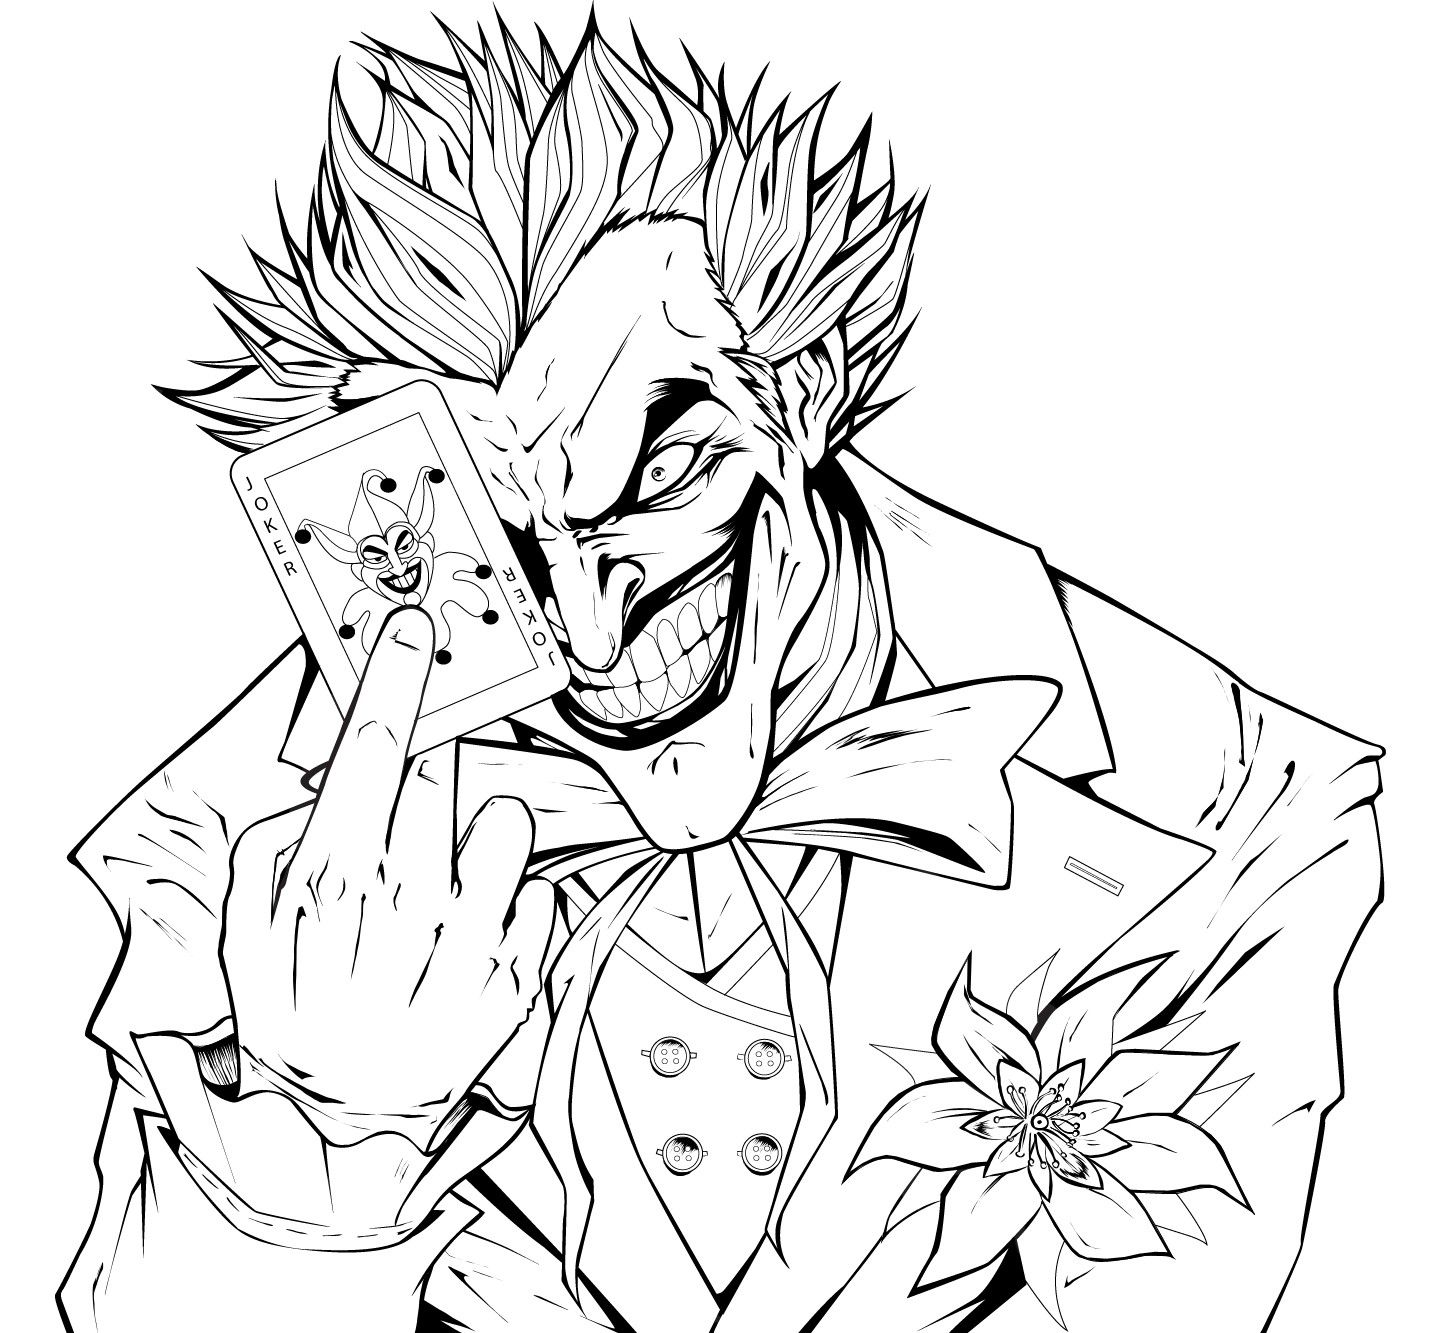 Superman coloring pages online - Joker Coloring Pages Printable My Image Sense